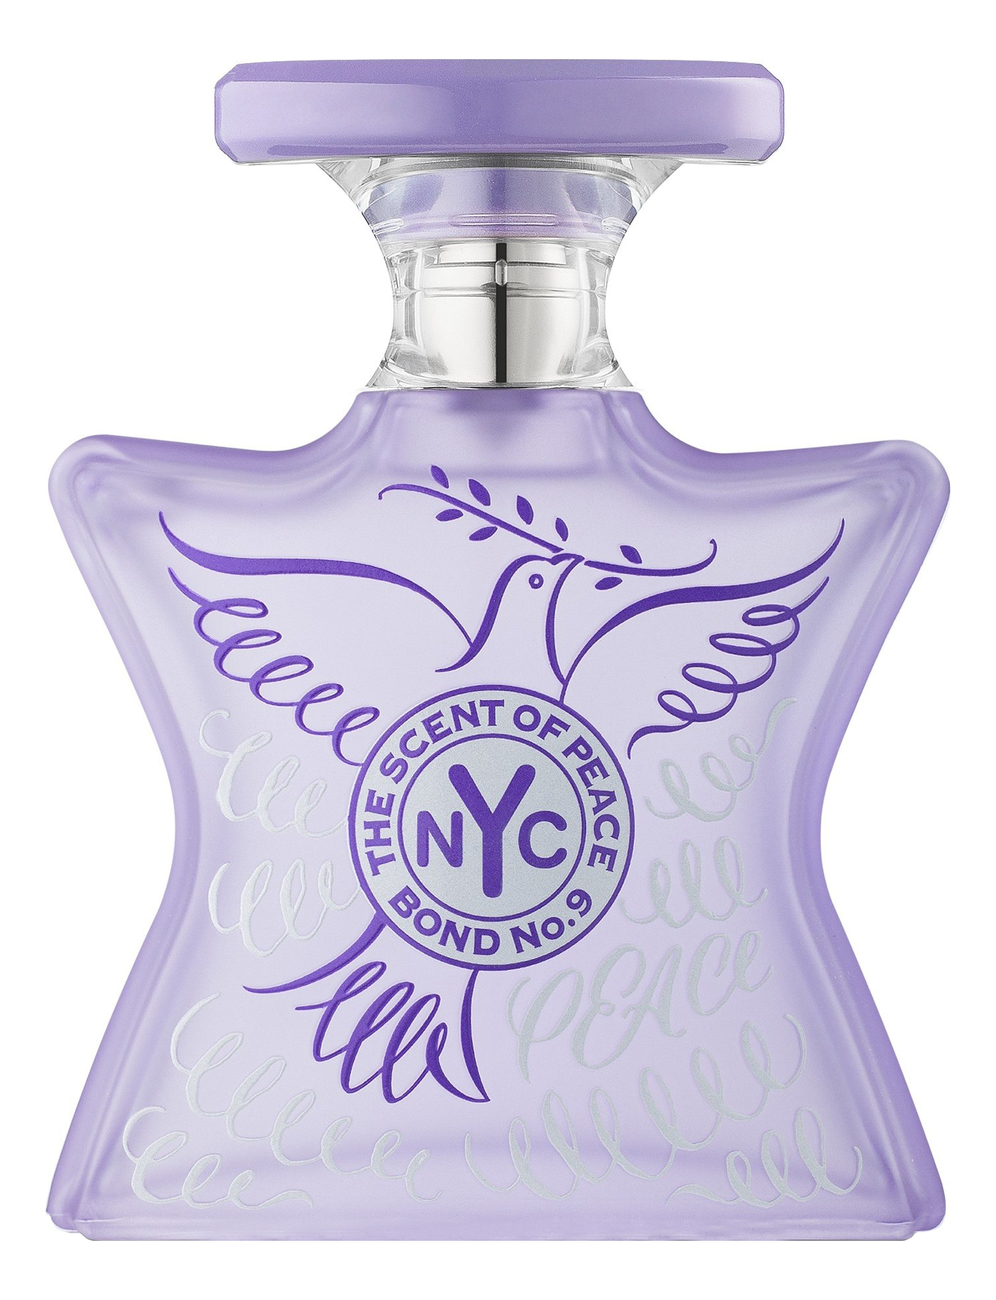 Bond No 9 The Scent of Peace: парфюмерная вода 2мл bond of fire